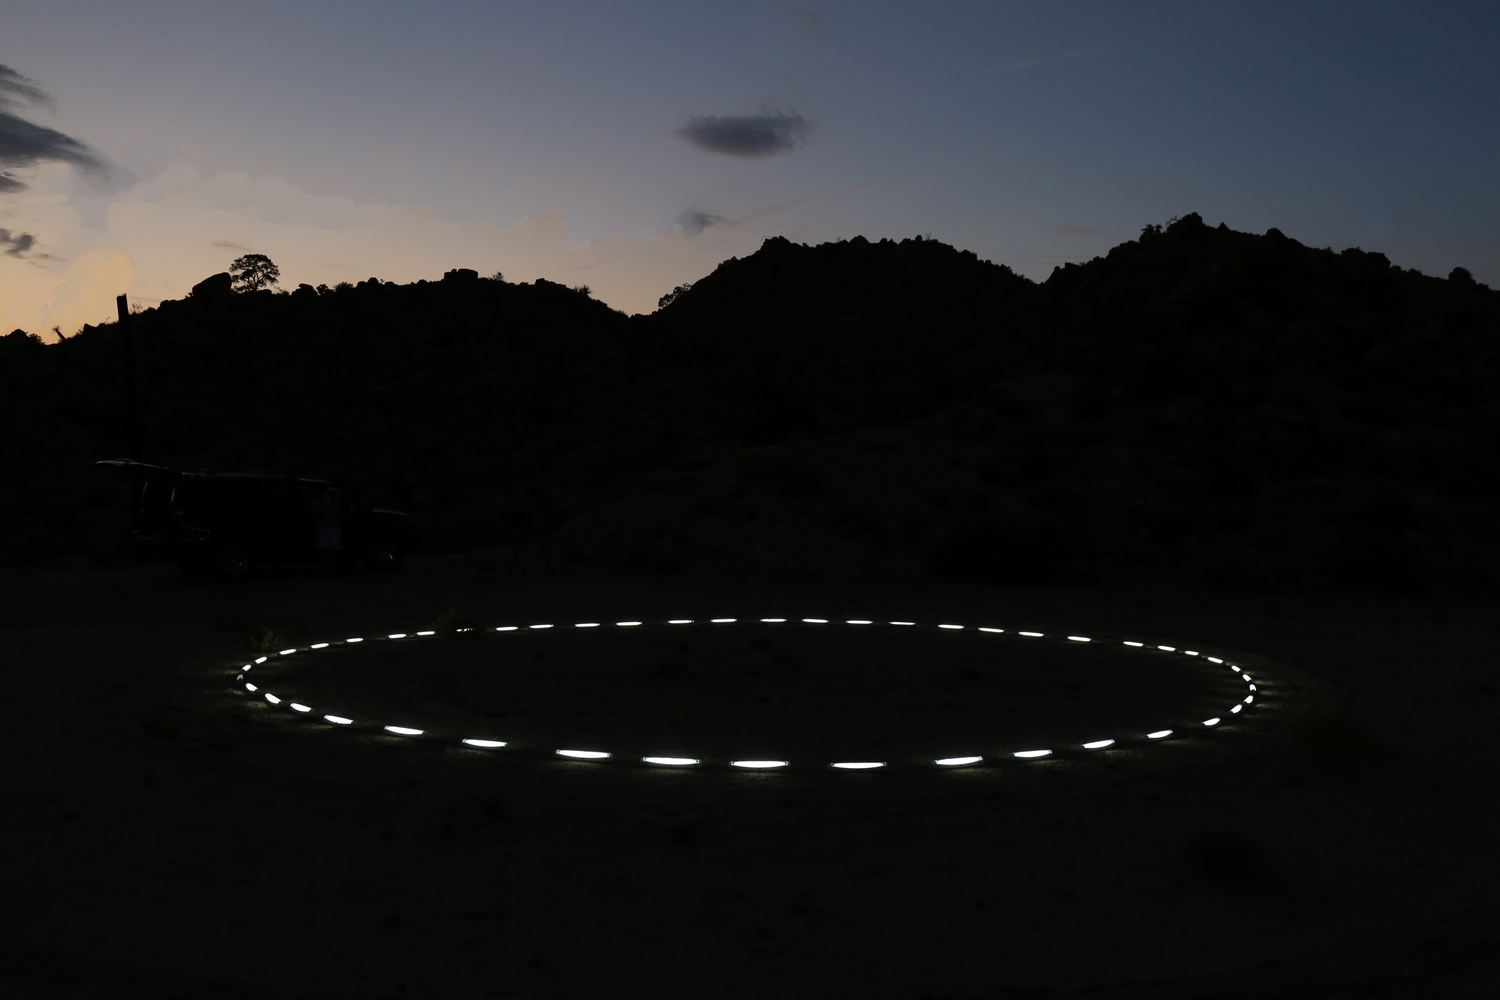 Lunar Ceremony  Flourescence 100' diameter   The fourth of my Installation series for the Mojave.   Always showing the same face, synchronous rotation, our only satellite, surrounded by a trace of infinite dust.  Waxing and Waning the formation of the most ancient calendars. Over the course of the Lunar cycle, from New Moon to New Moon - the course of 29.6 days, patterning the phases. Lighting up the the phases of the moon peacefully, from a hidden plateau in the Mojave desert. Ancient ritual, and symbolic parts of self, as rising and setting with the moon, however only revealed as the night falls to dusk. Circular in nature, but remaining parts, illuminated and drawn into Jungian shadow. Relevant and reflected into the sky.